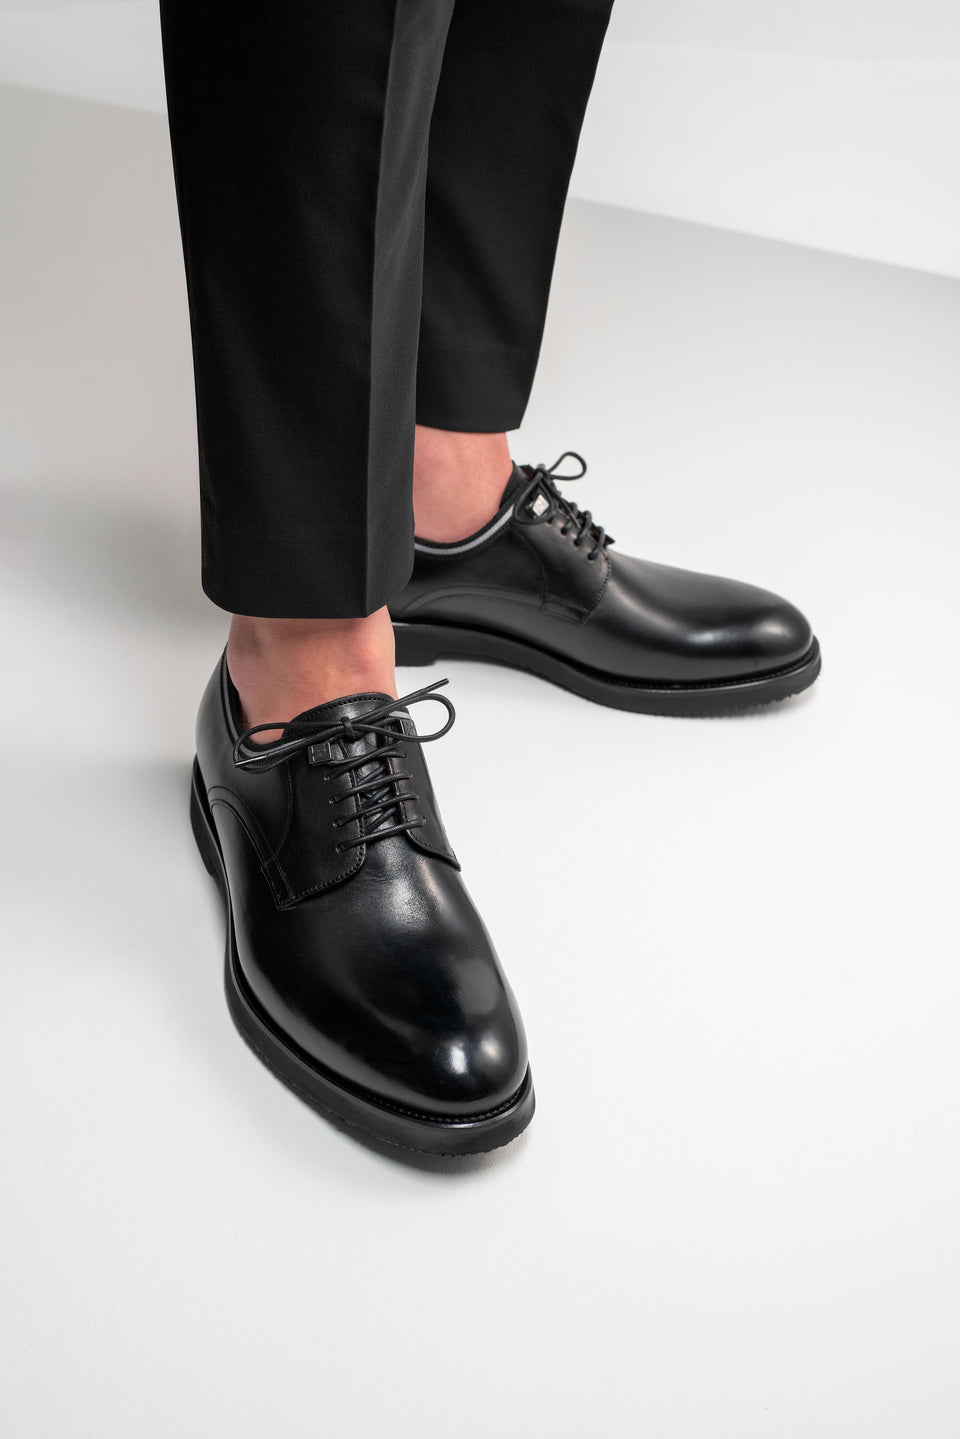 001 - Derby in Black Calfskin